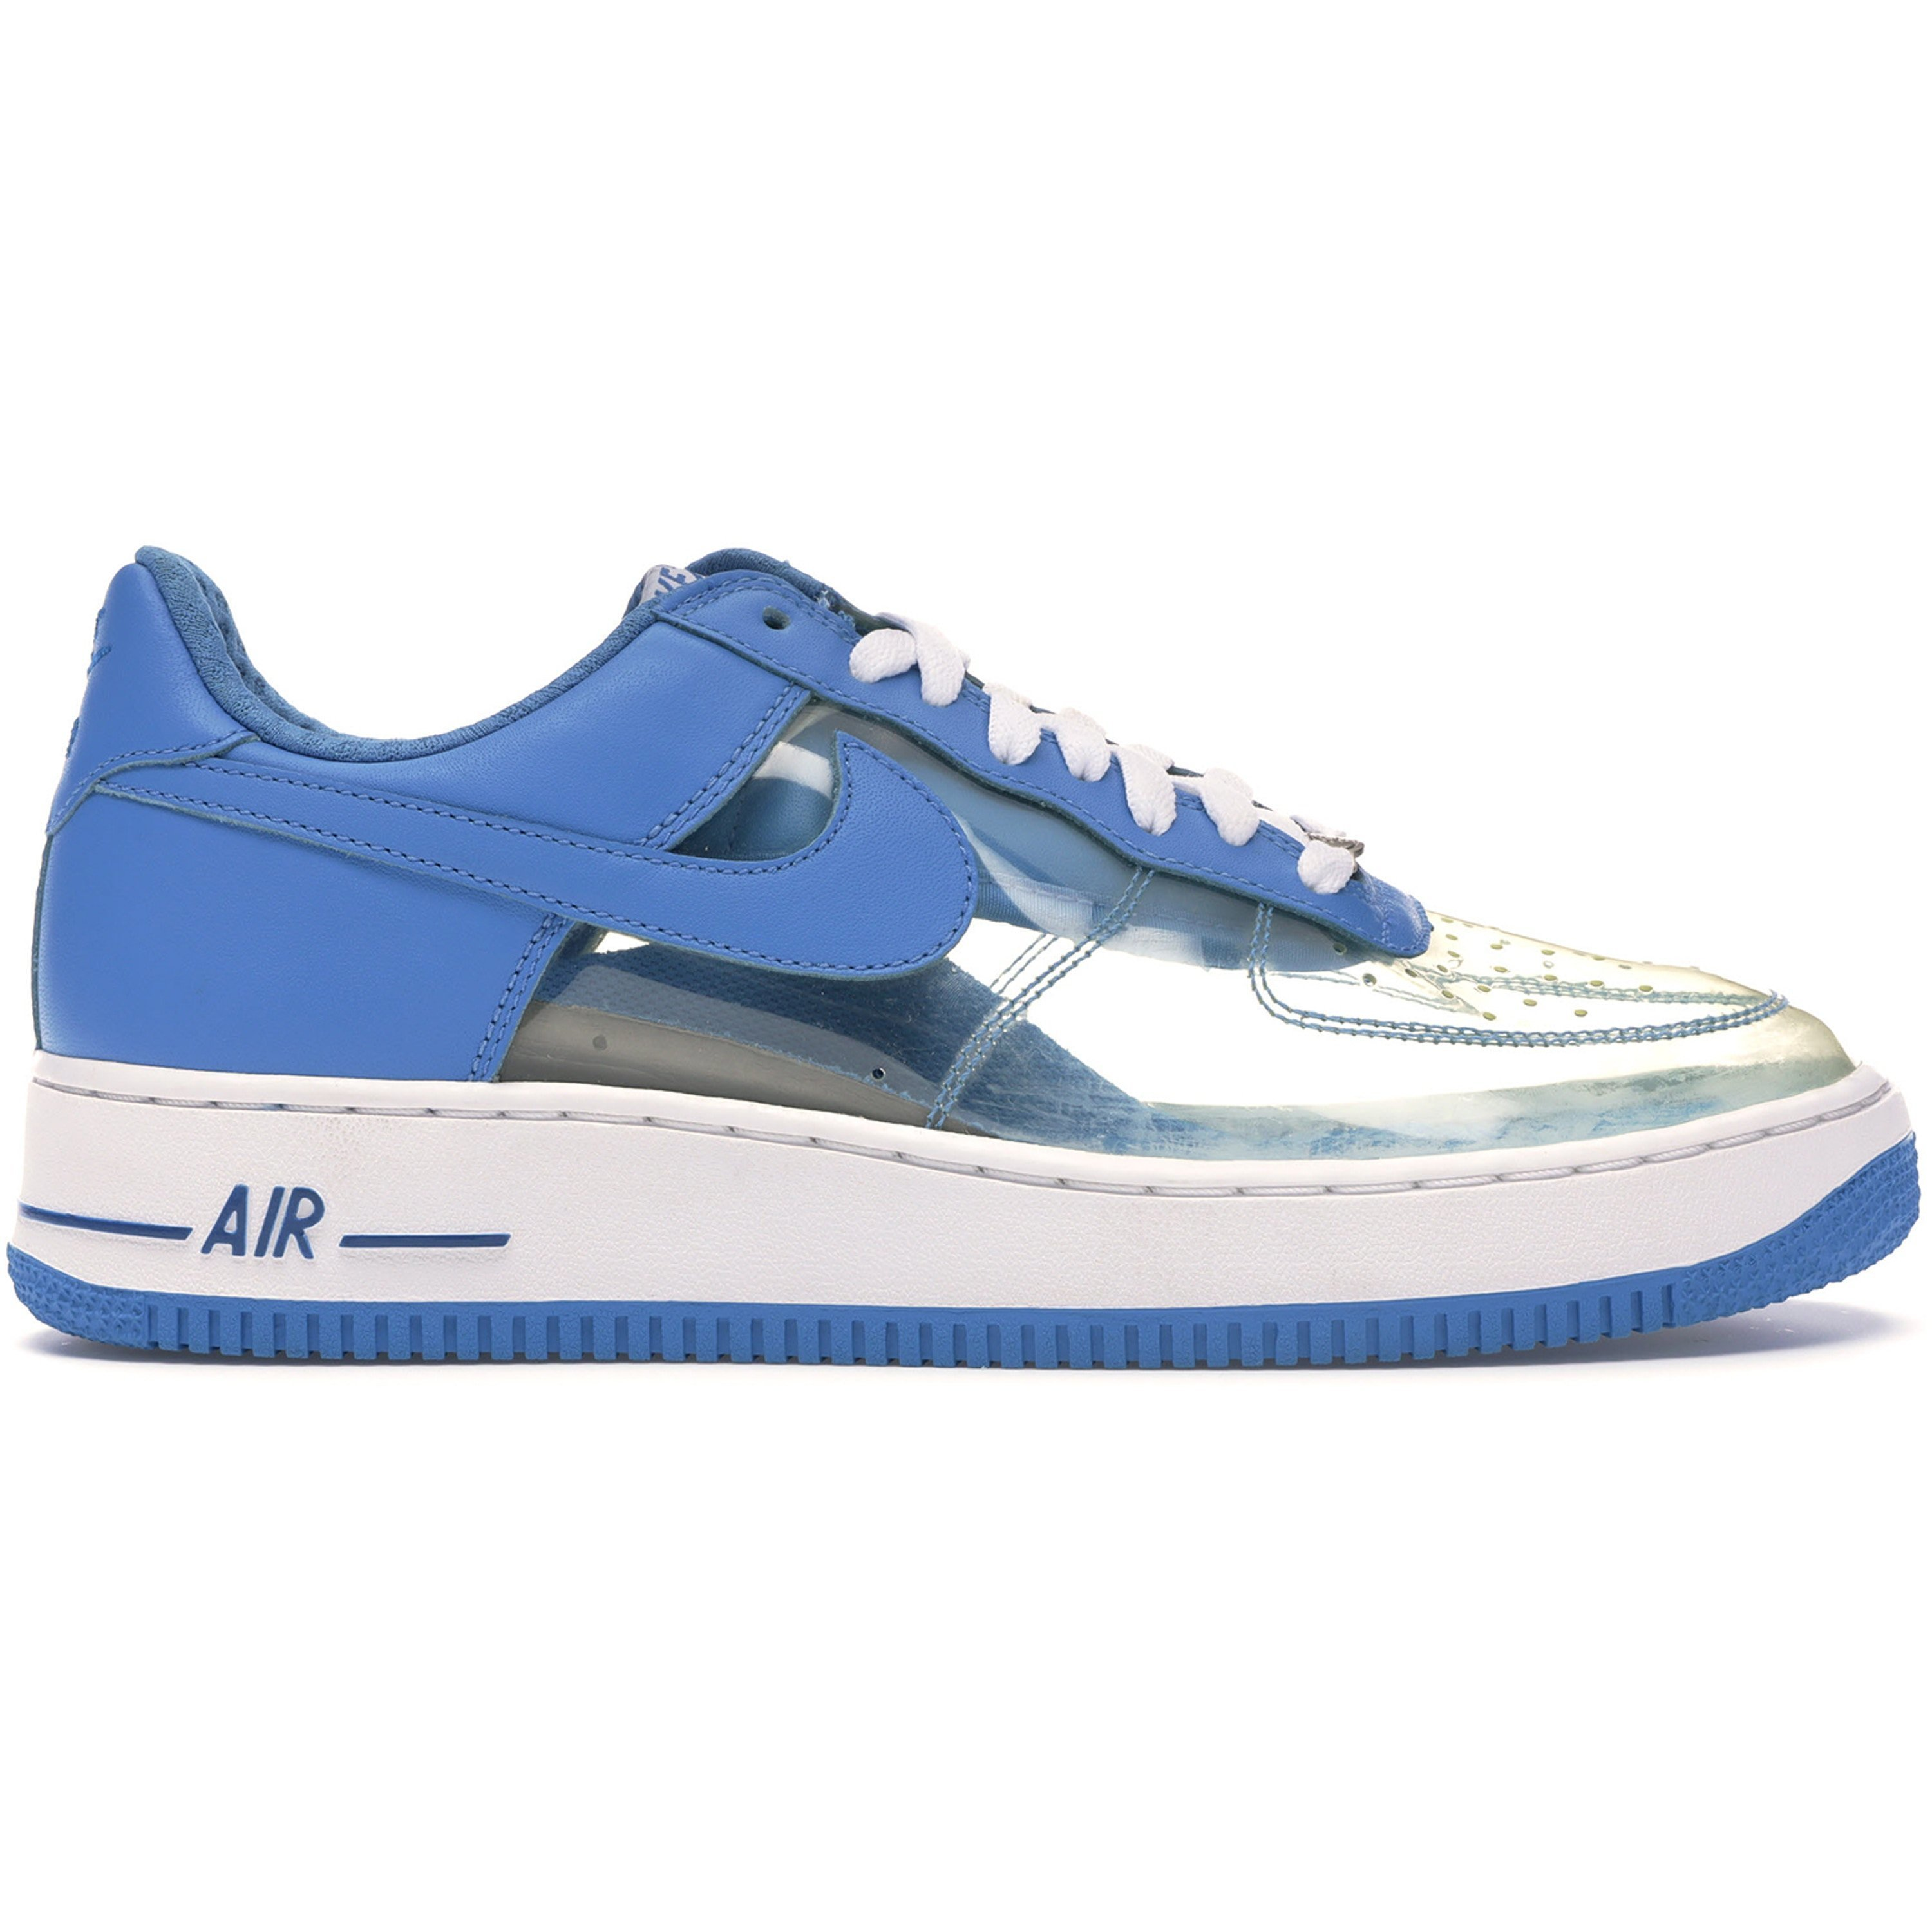 Nike Air Force 1 Low Fantastic 4 Invisible Woman (313641-941)